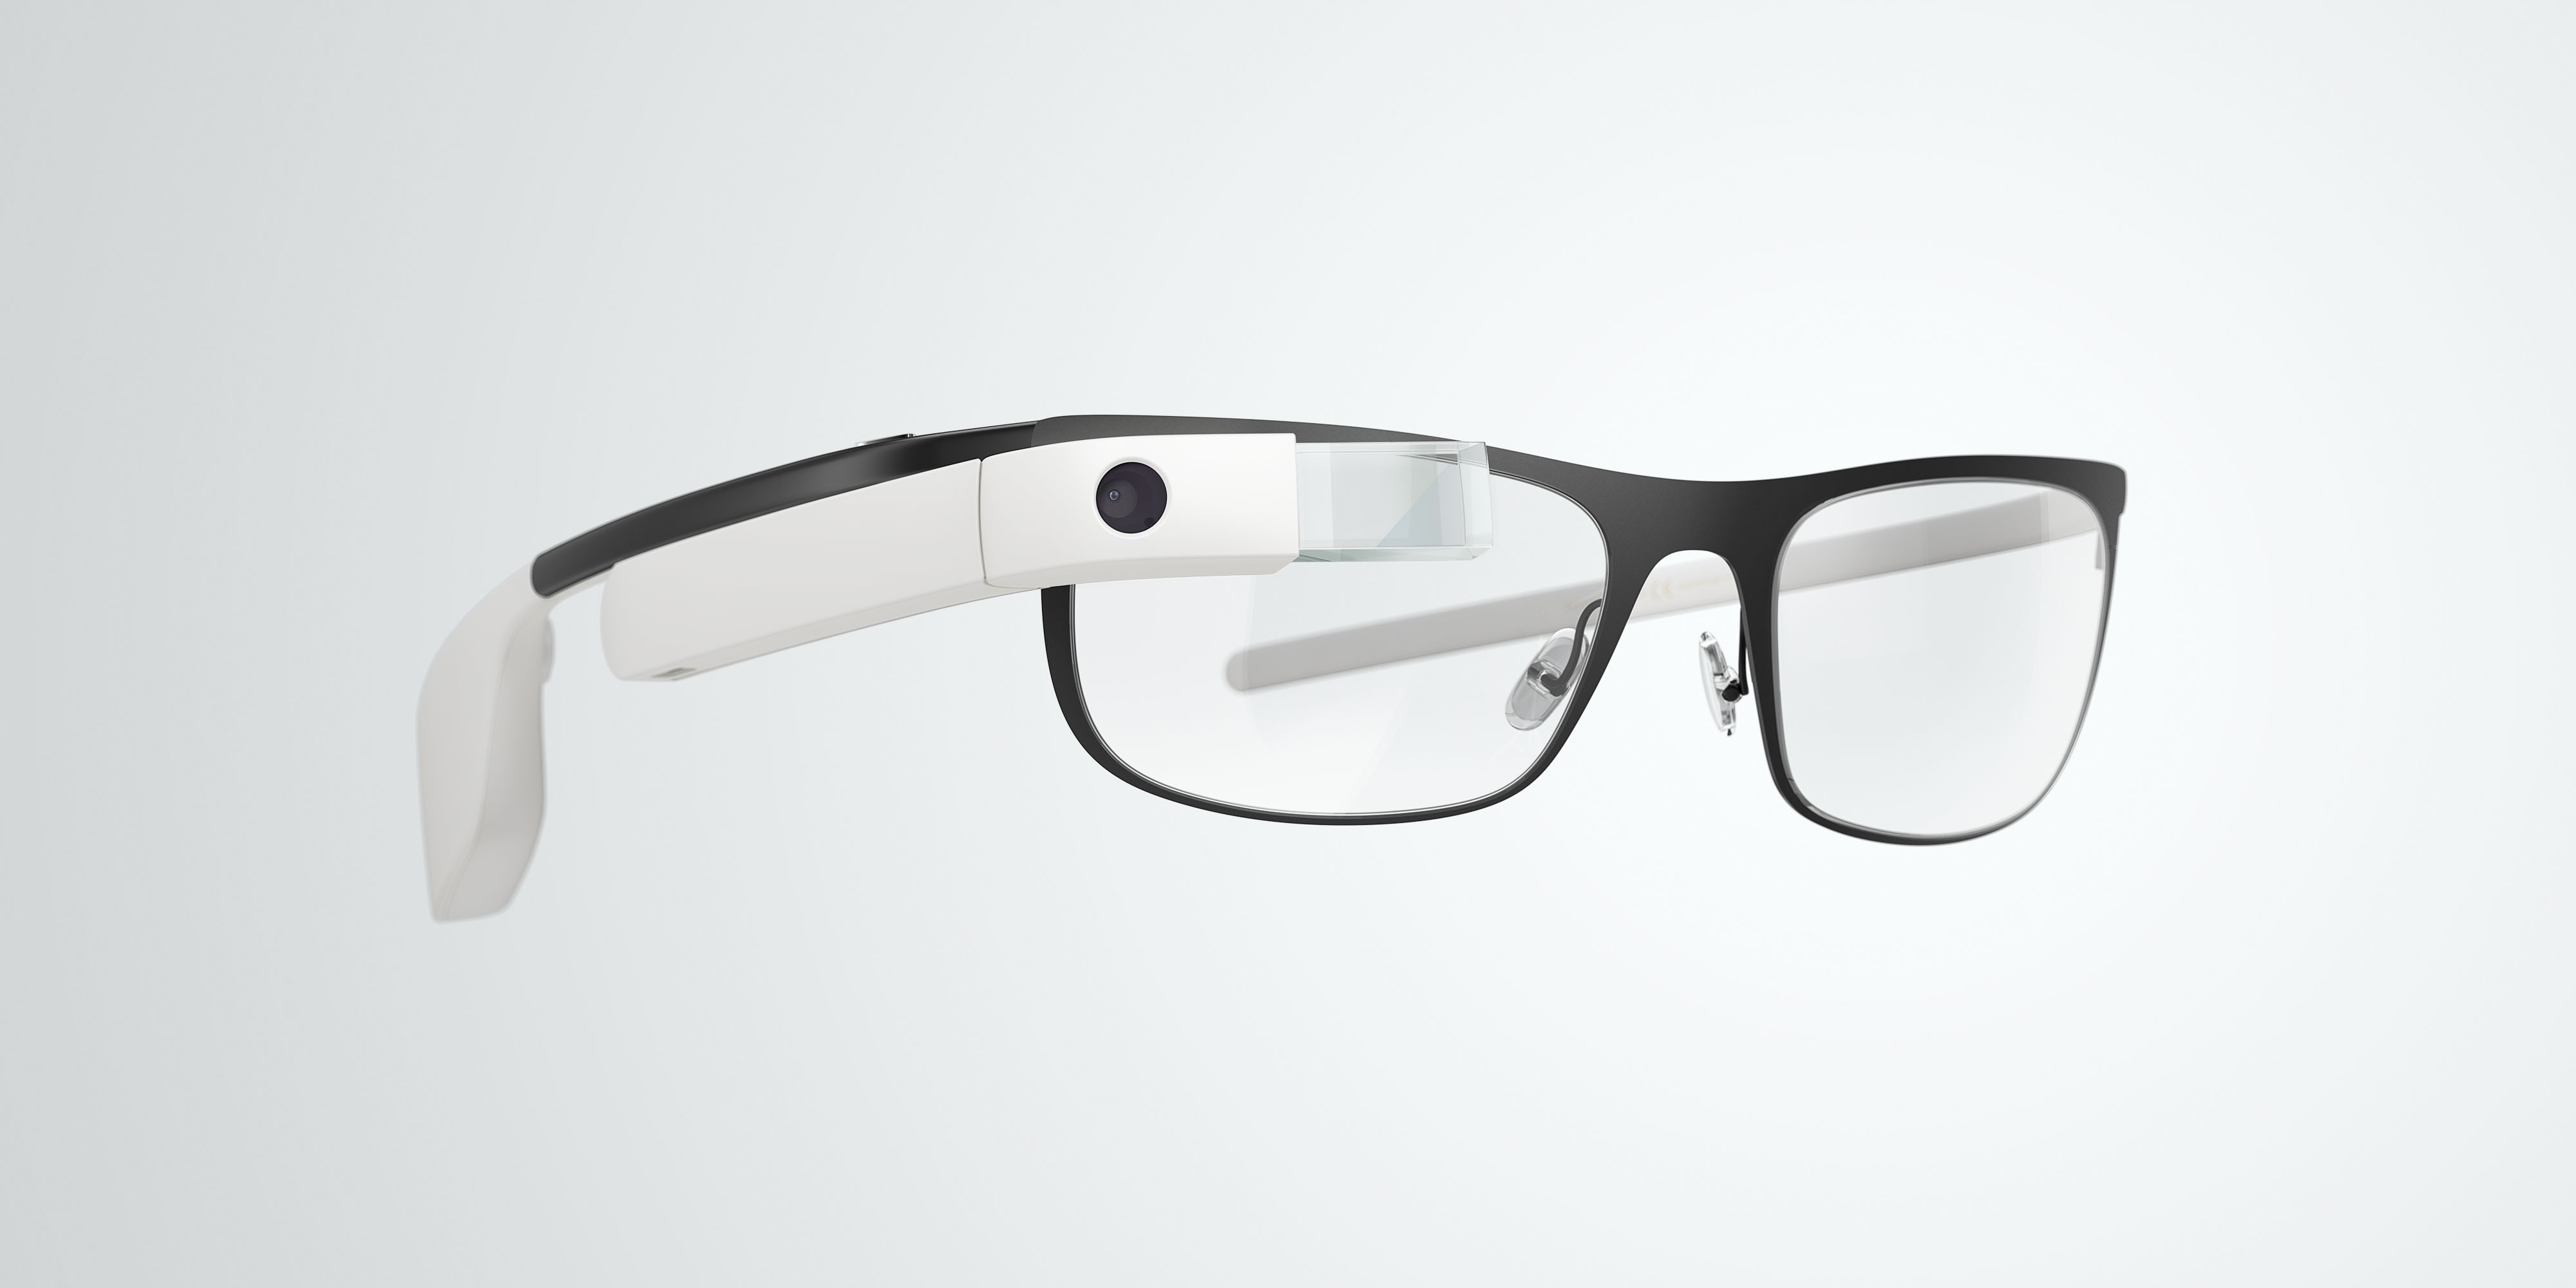 the google project glass After weeks of speculation and rumors, google has officially pulled back the curtain on what they have come to call project glass -- a pair of augmented reality glasses that seek to provide users real-time information right in front of their eyes.